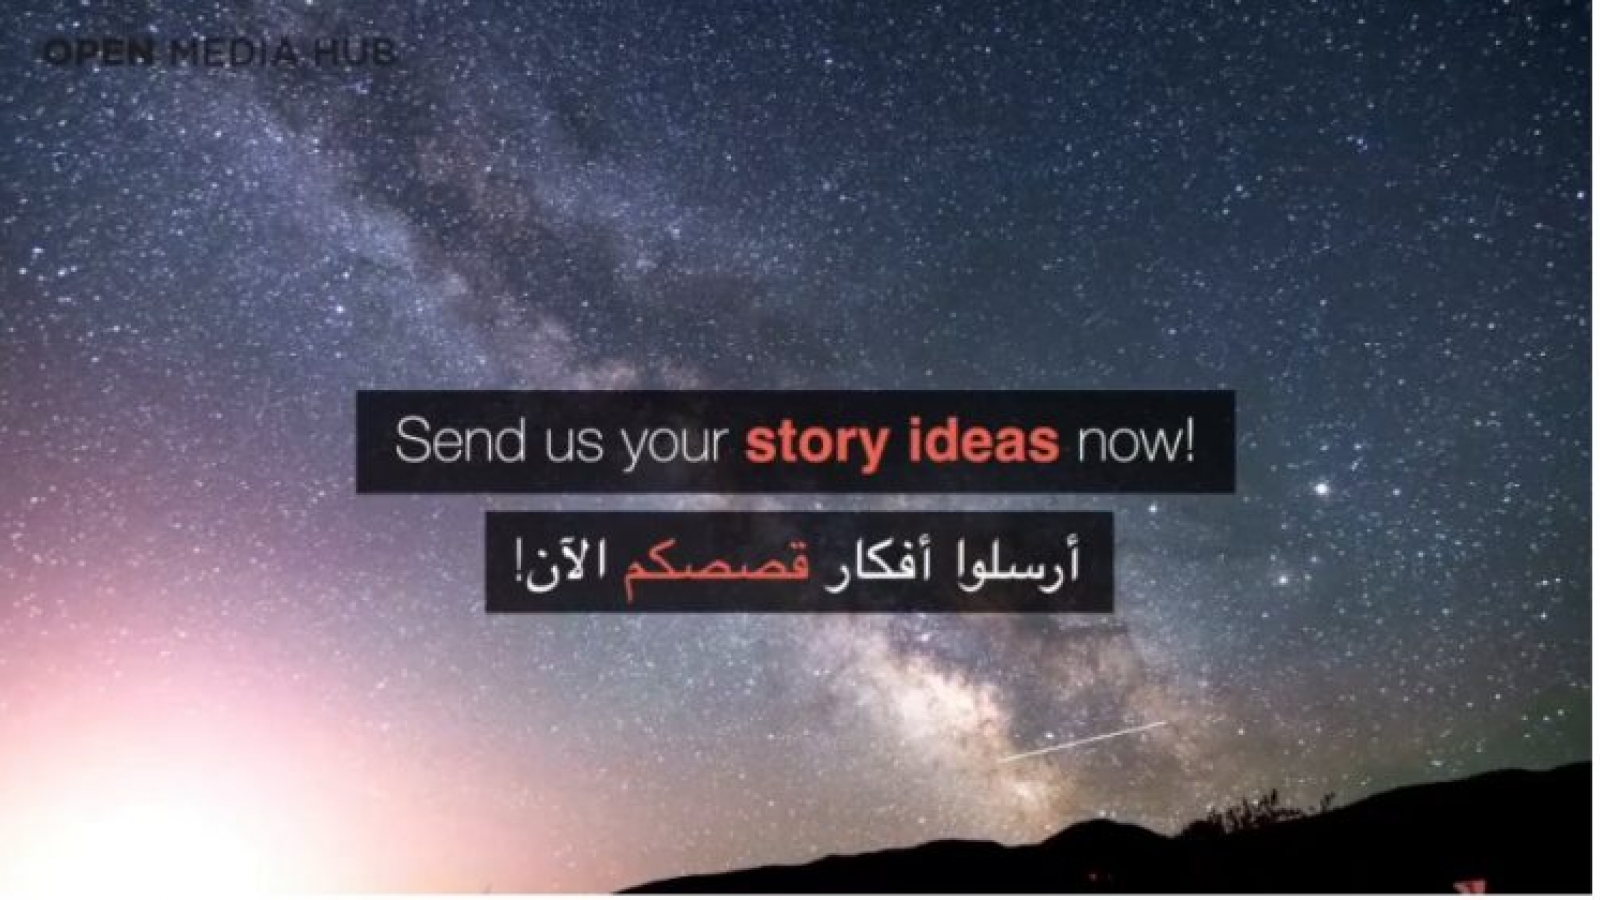 let us here your story